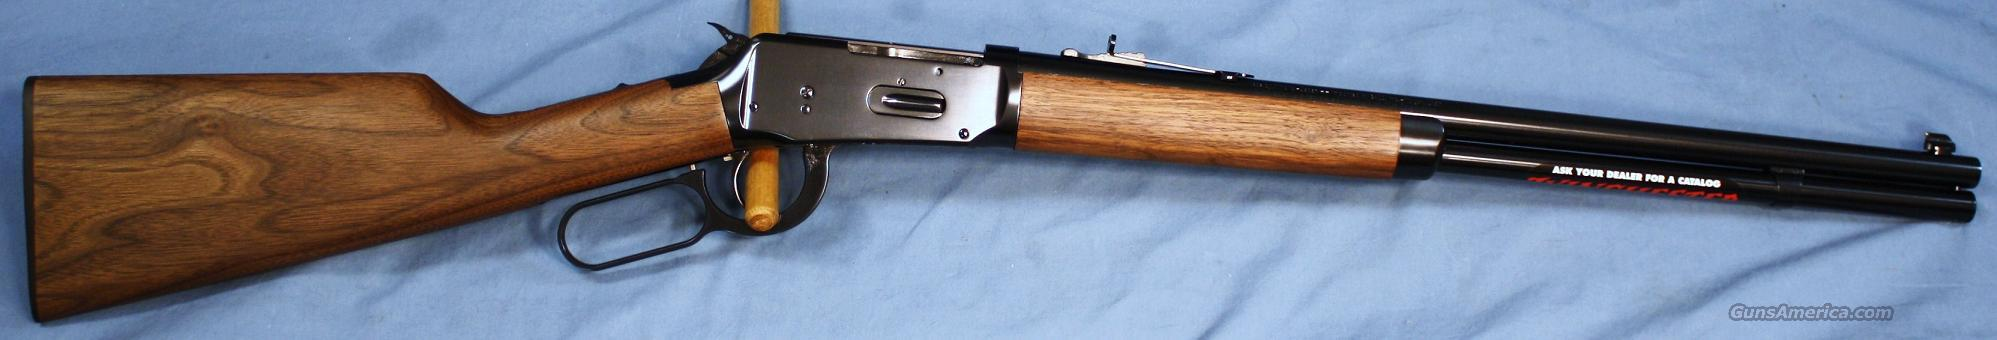 Winchester Model 94 Lever Action Short Rifle .38-55 WCF Angle Eject  Guns > Rifles > Winchester Rifles - Modern Lever > Model 94 > Post-64